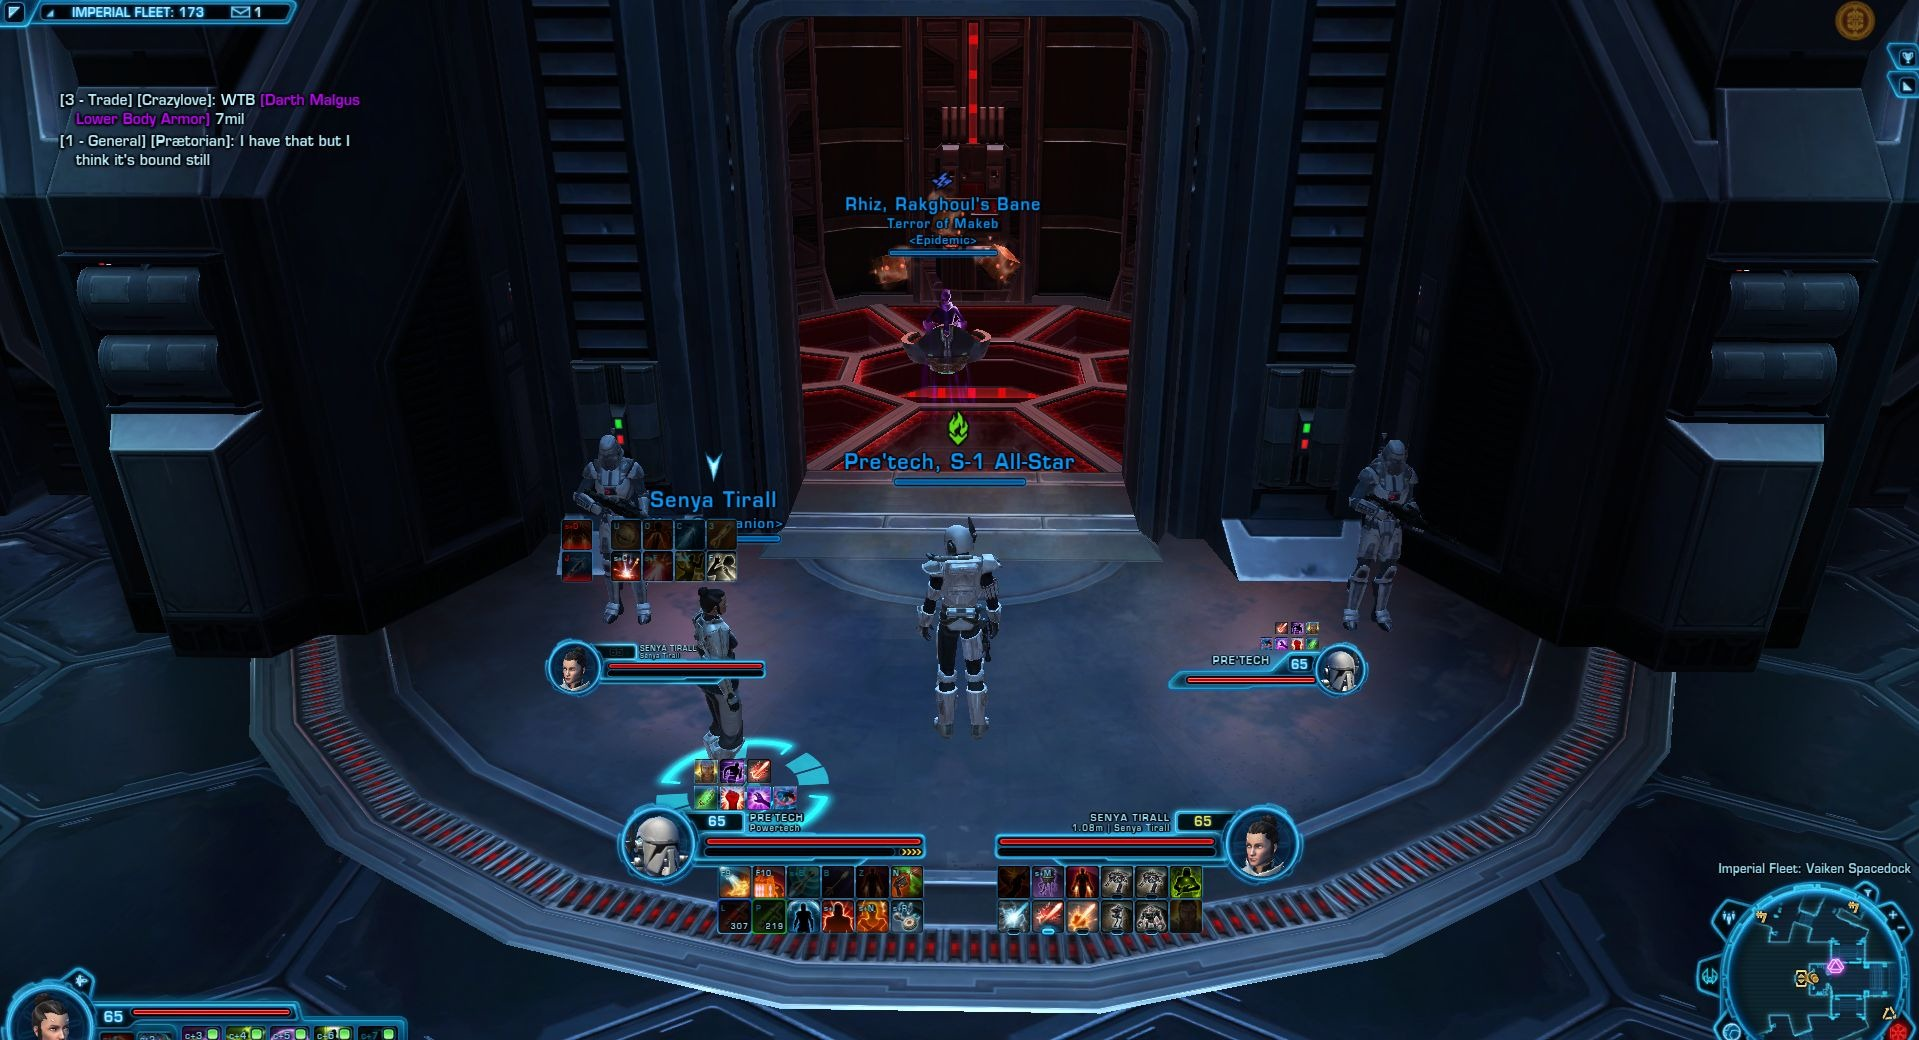 swtor-4.0-ap-pt-pvp-guide-71